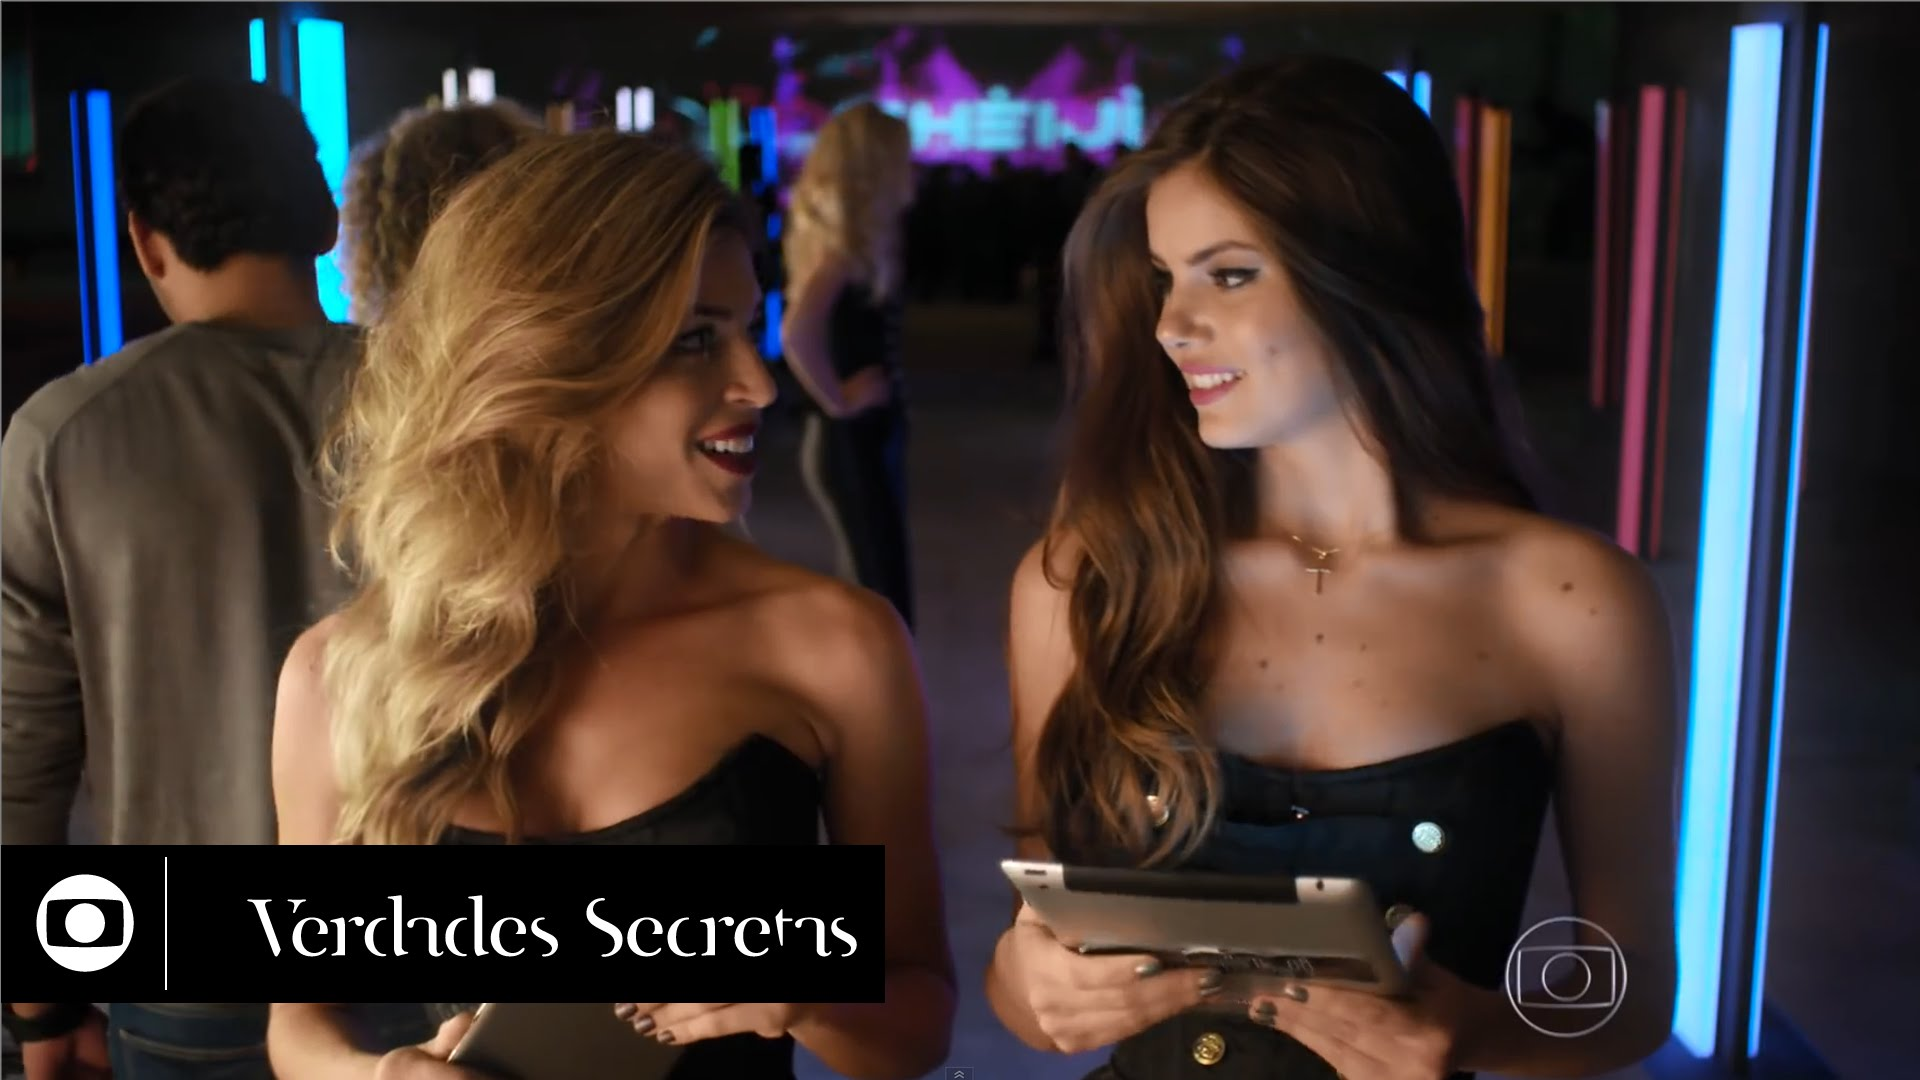 Verdades Secretas Trailer